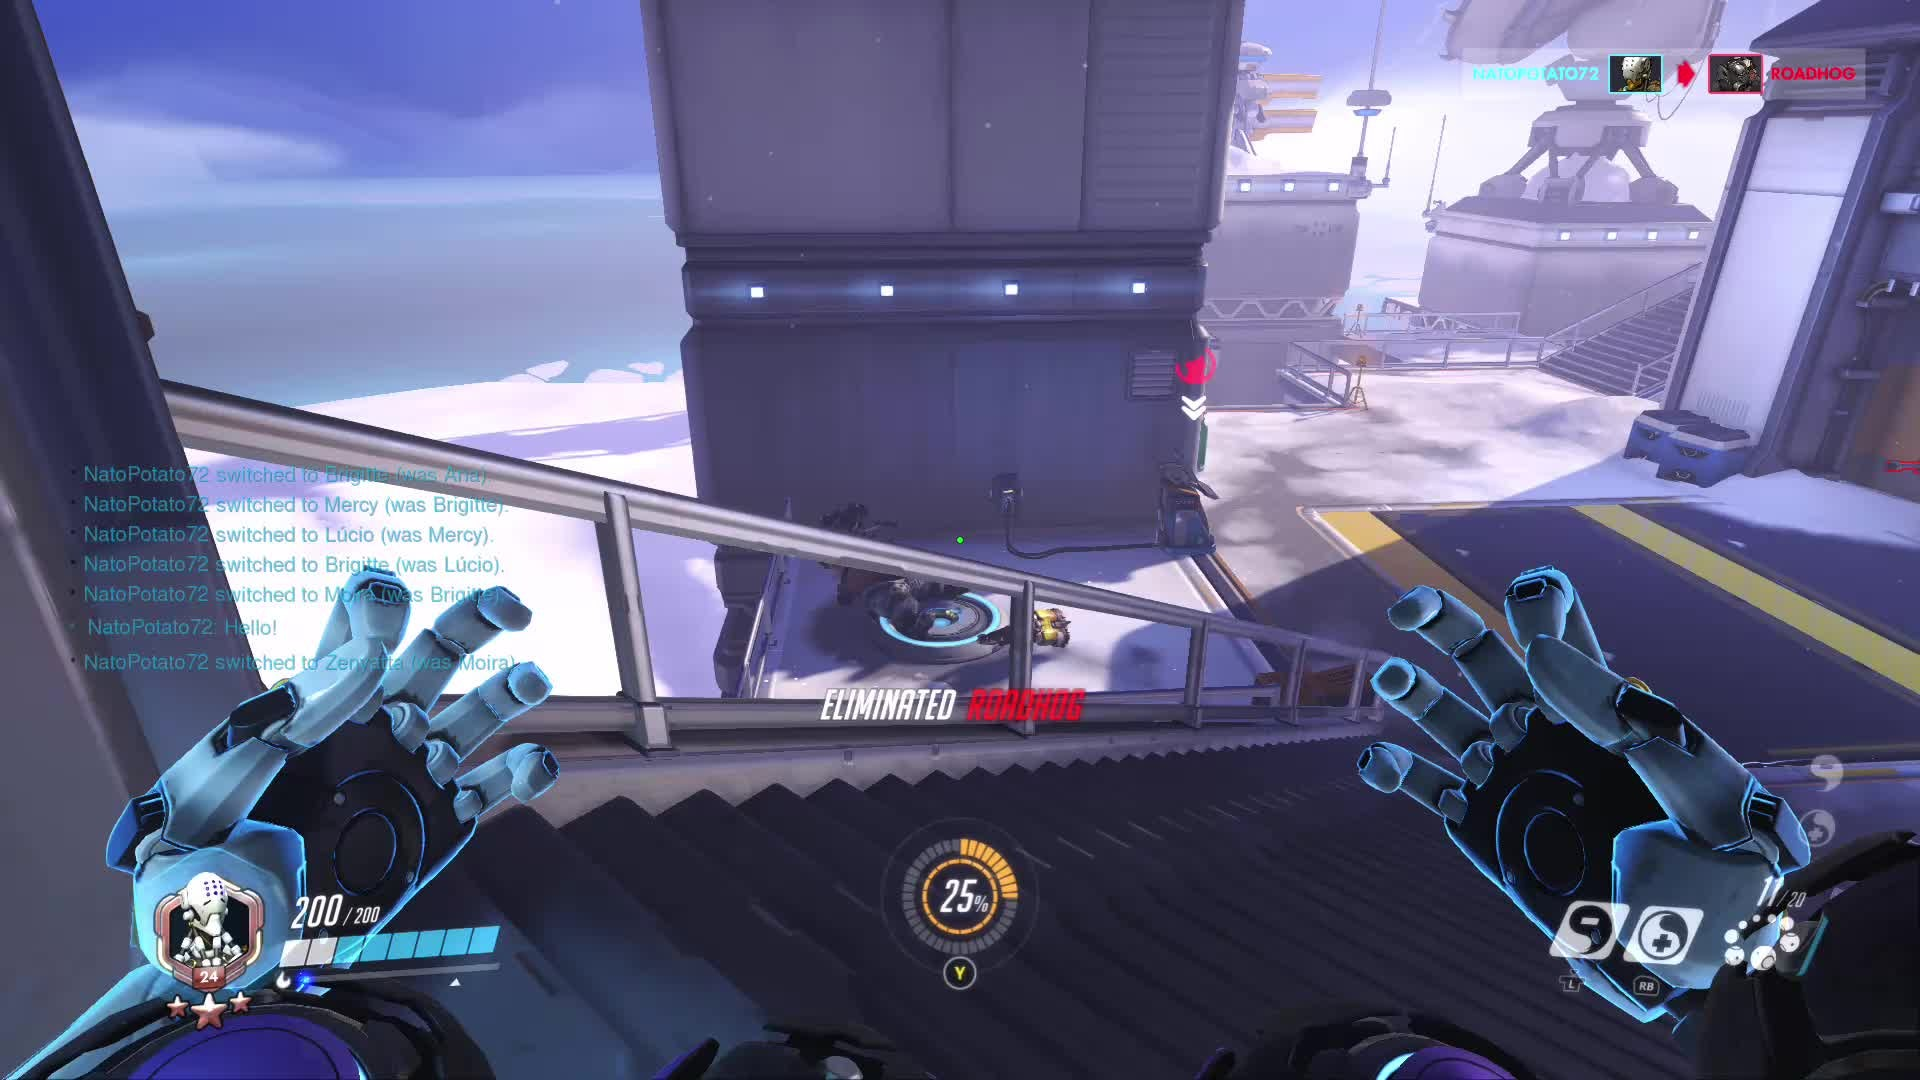 Overwatch: General - What Did He Say?!?!?! video cover image 0